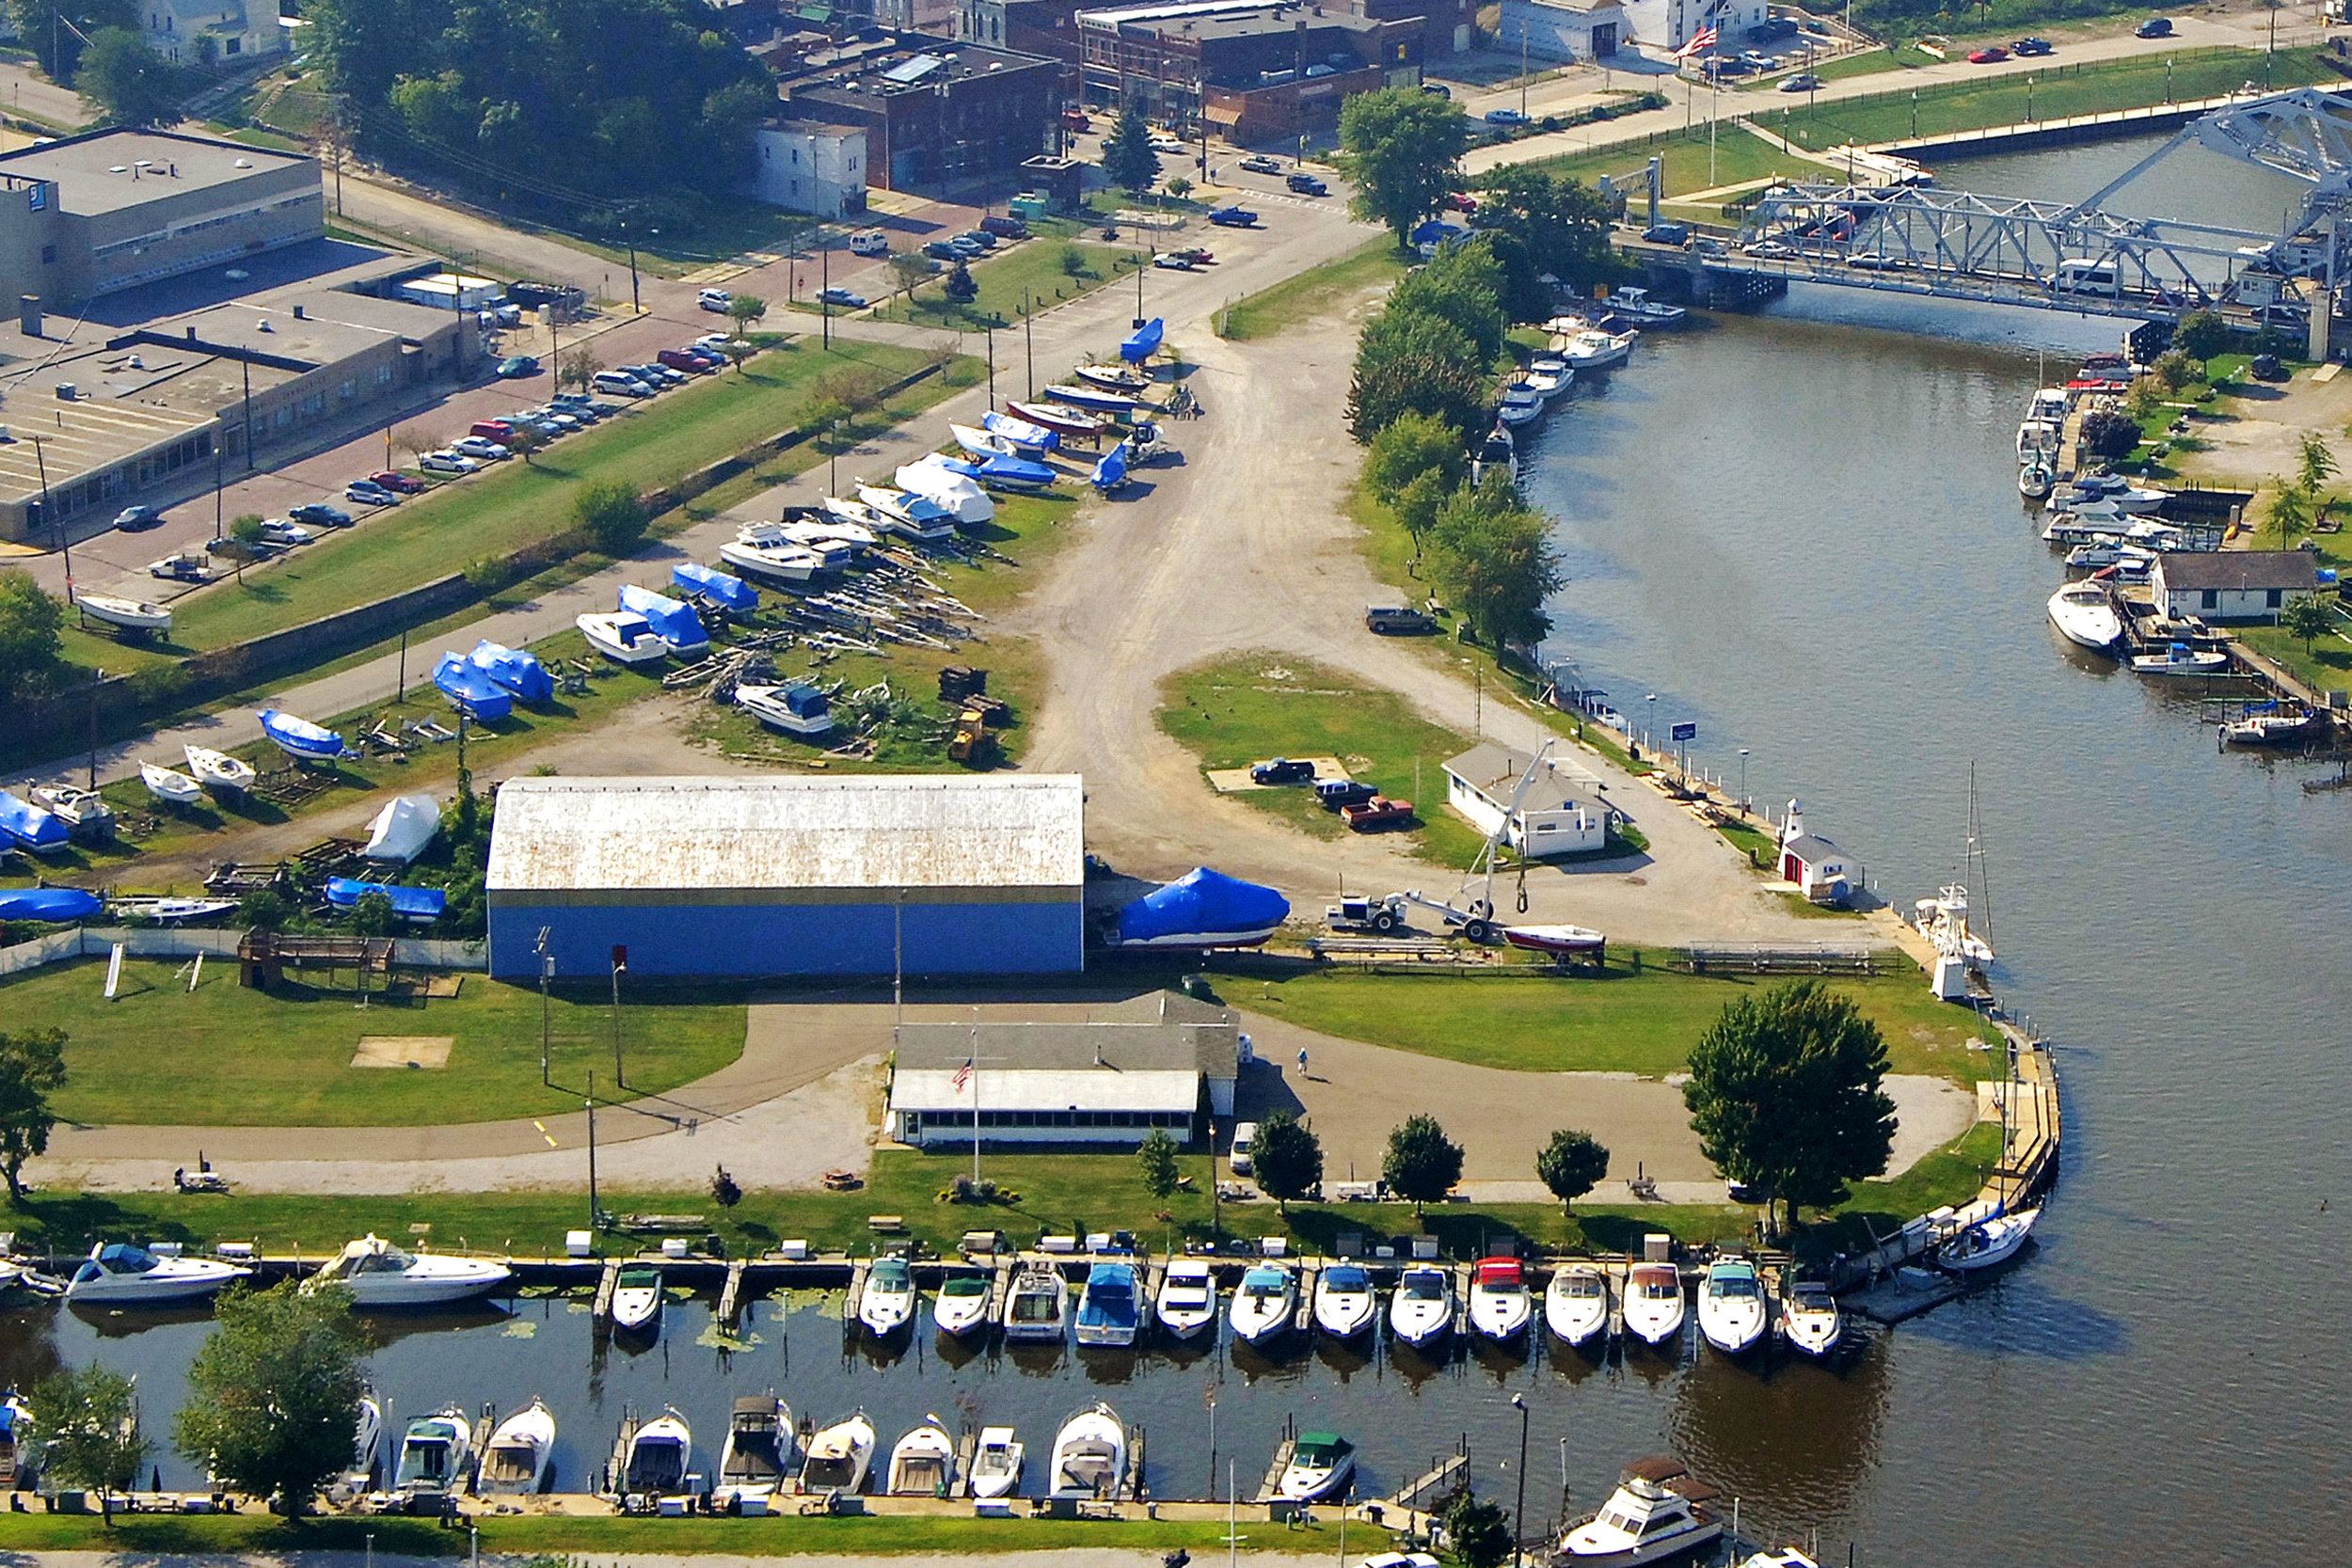 Sutherland Marine - 970 West 5th Street * (440) 964-3434Located east of the Lift Bridge in the picturesque Ashtabula River.